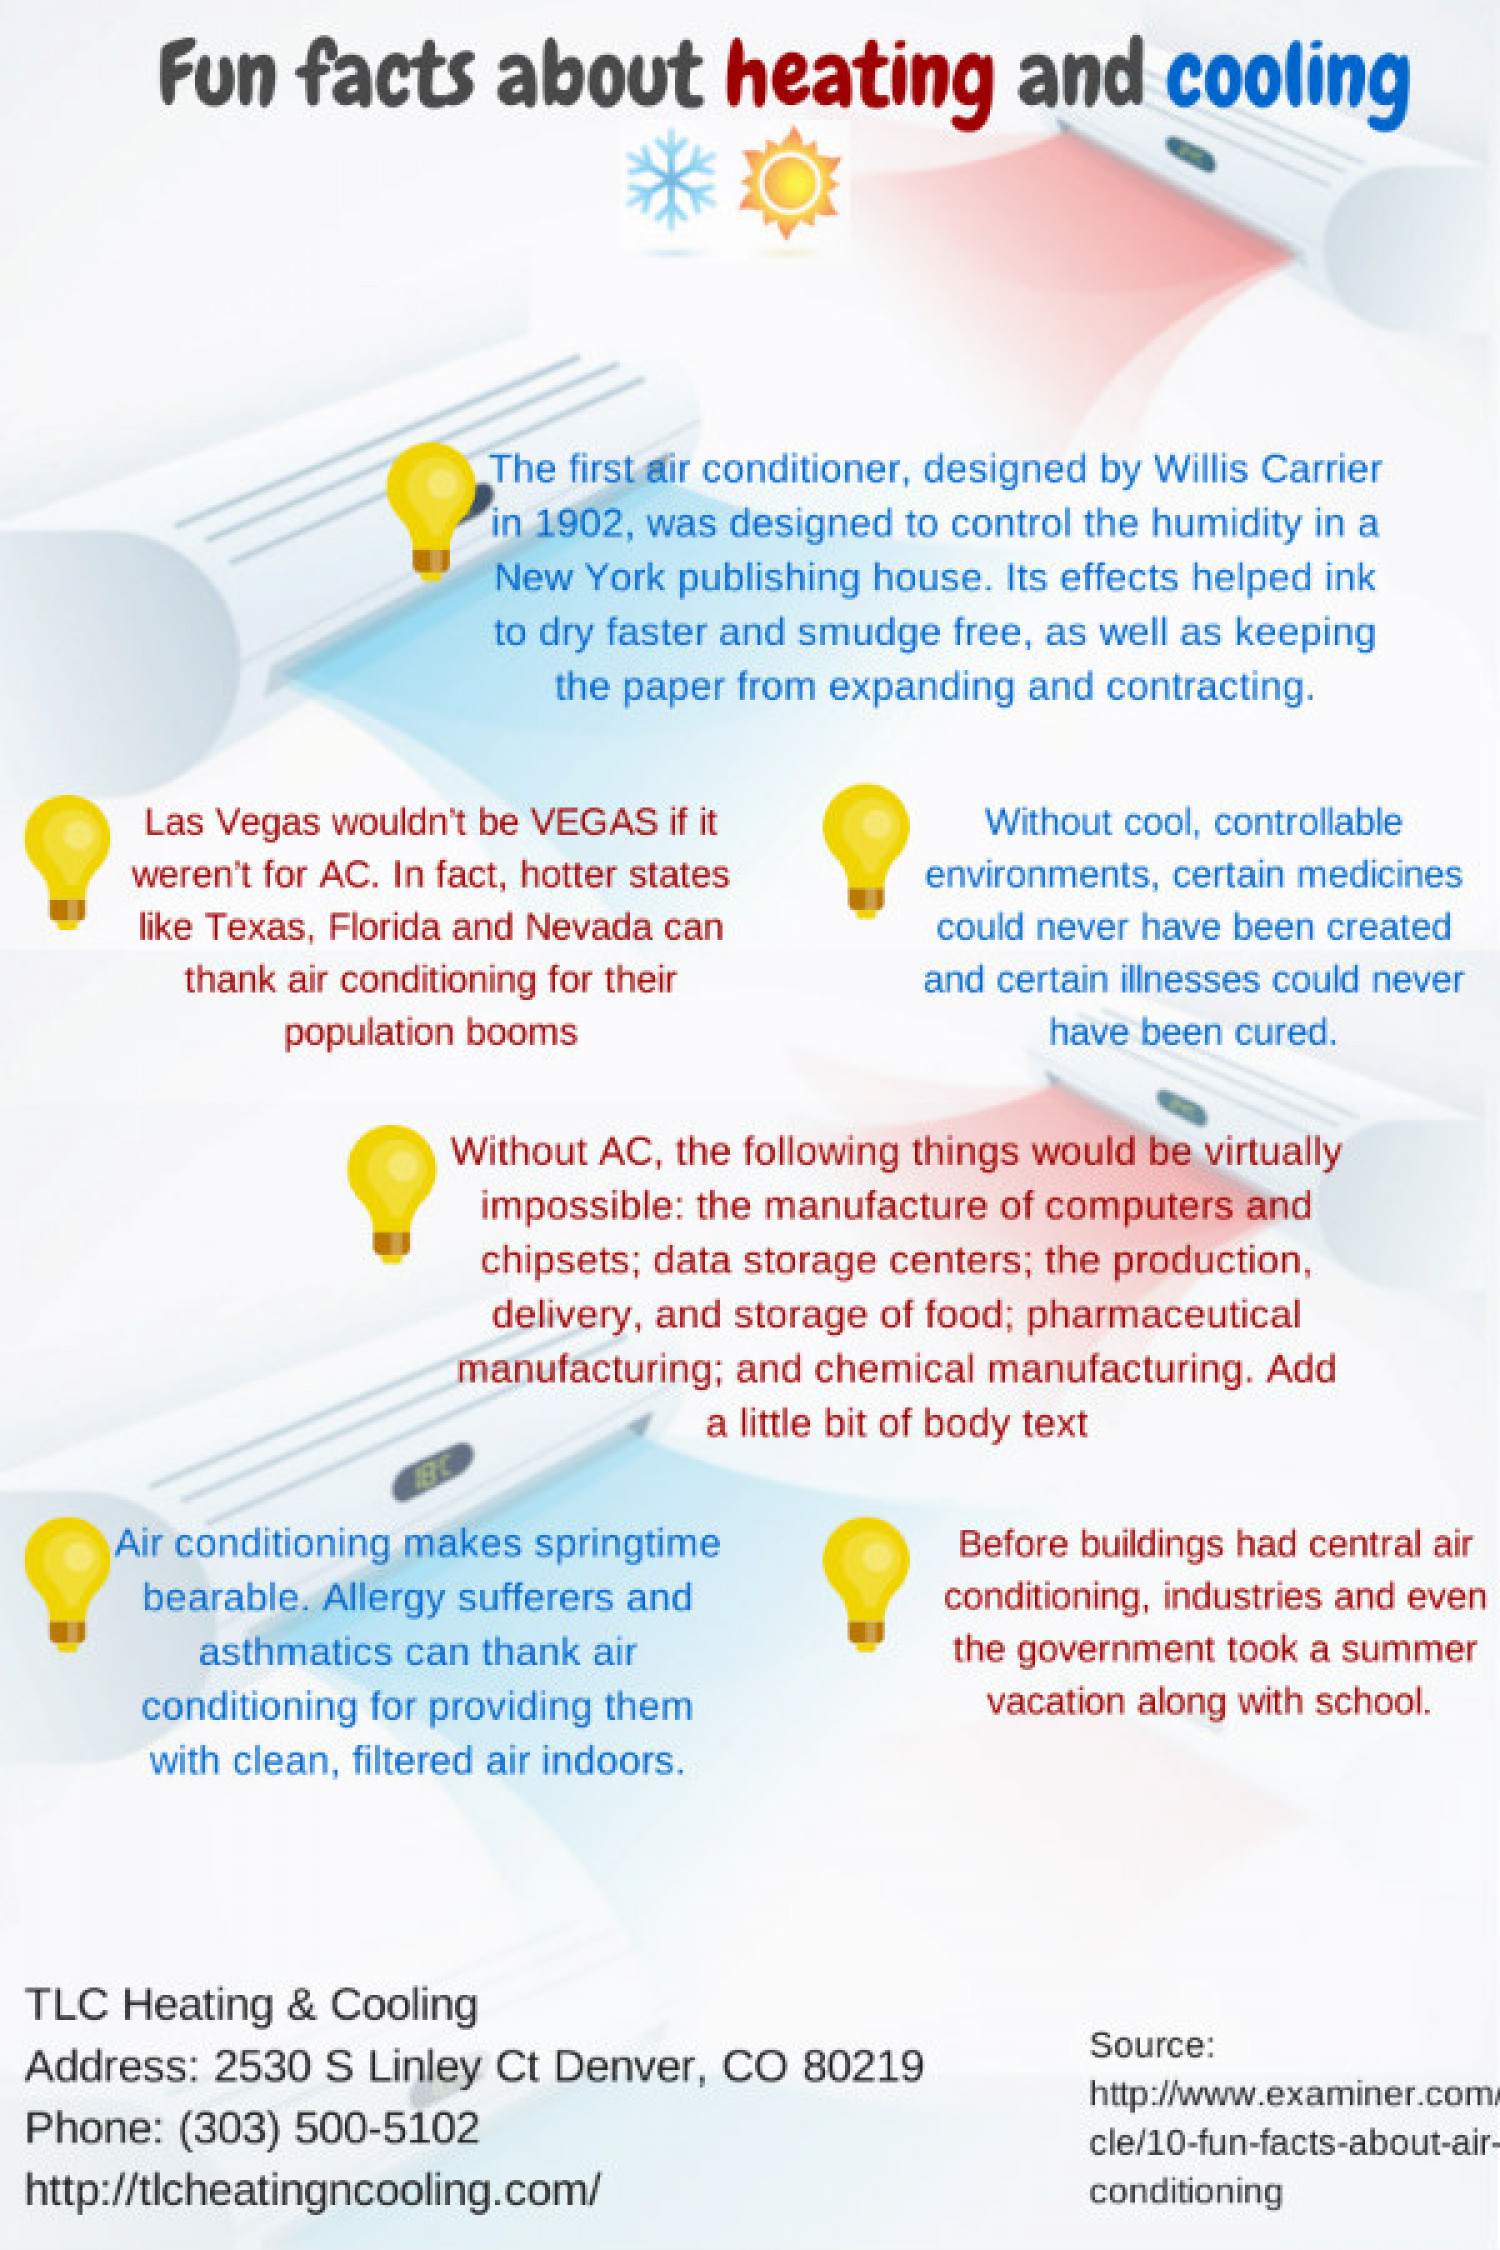 Fun Facts About Heating and Cooling Infographic